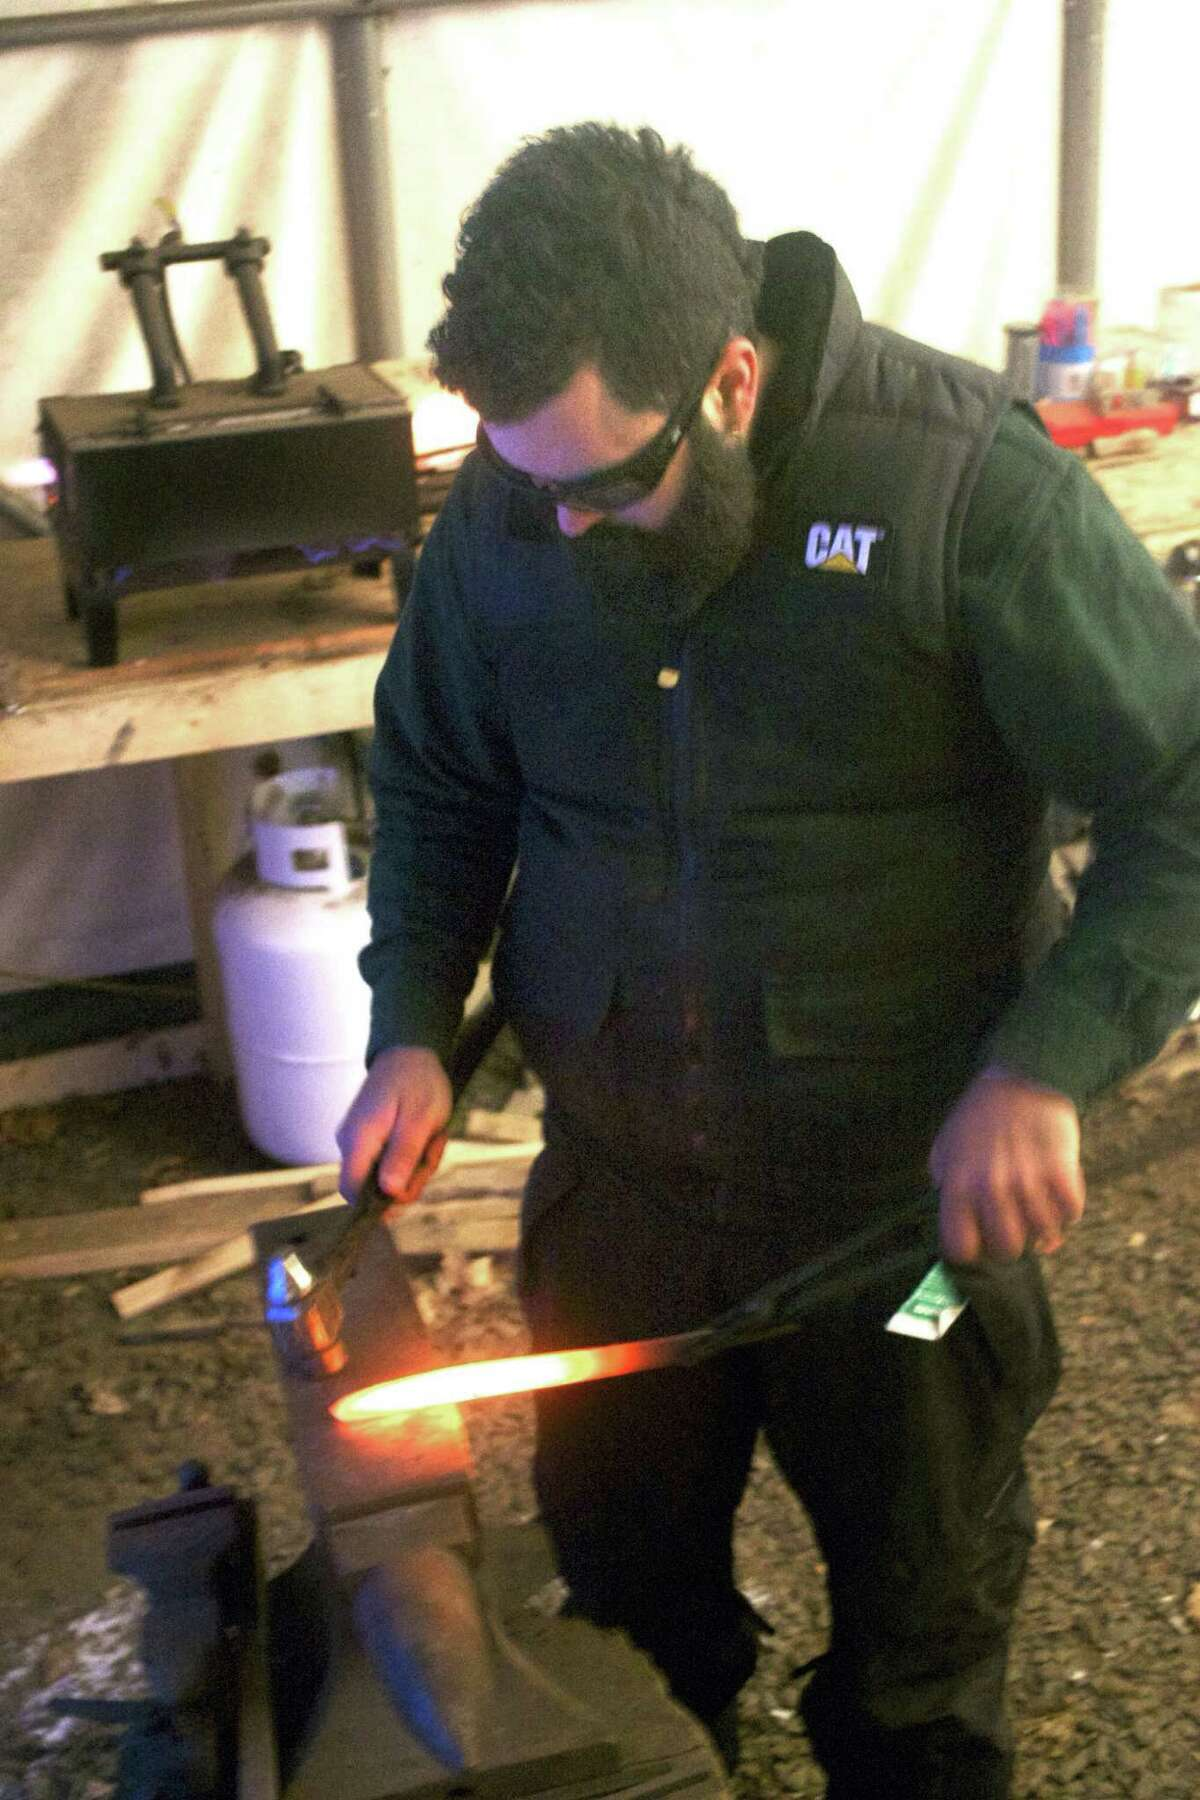 Jamie Vining works with a blade and anvil in his Danbury blacksmith shop, much as he will in the July 20 episode of Forged in Fire on The History Channel.